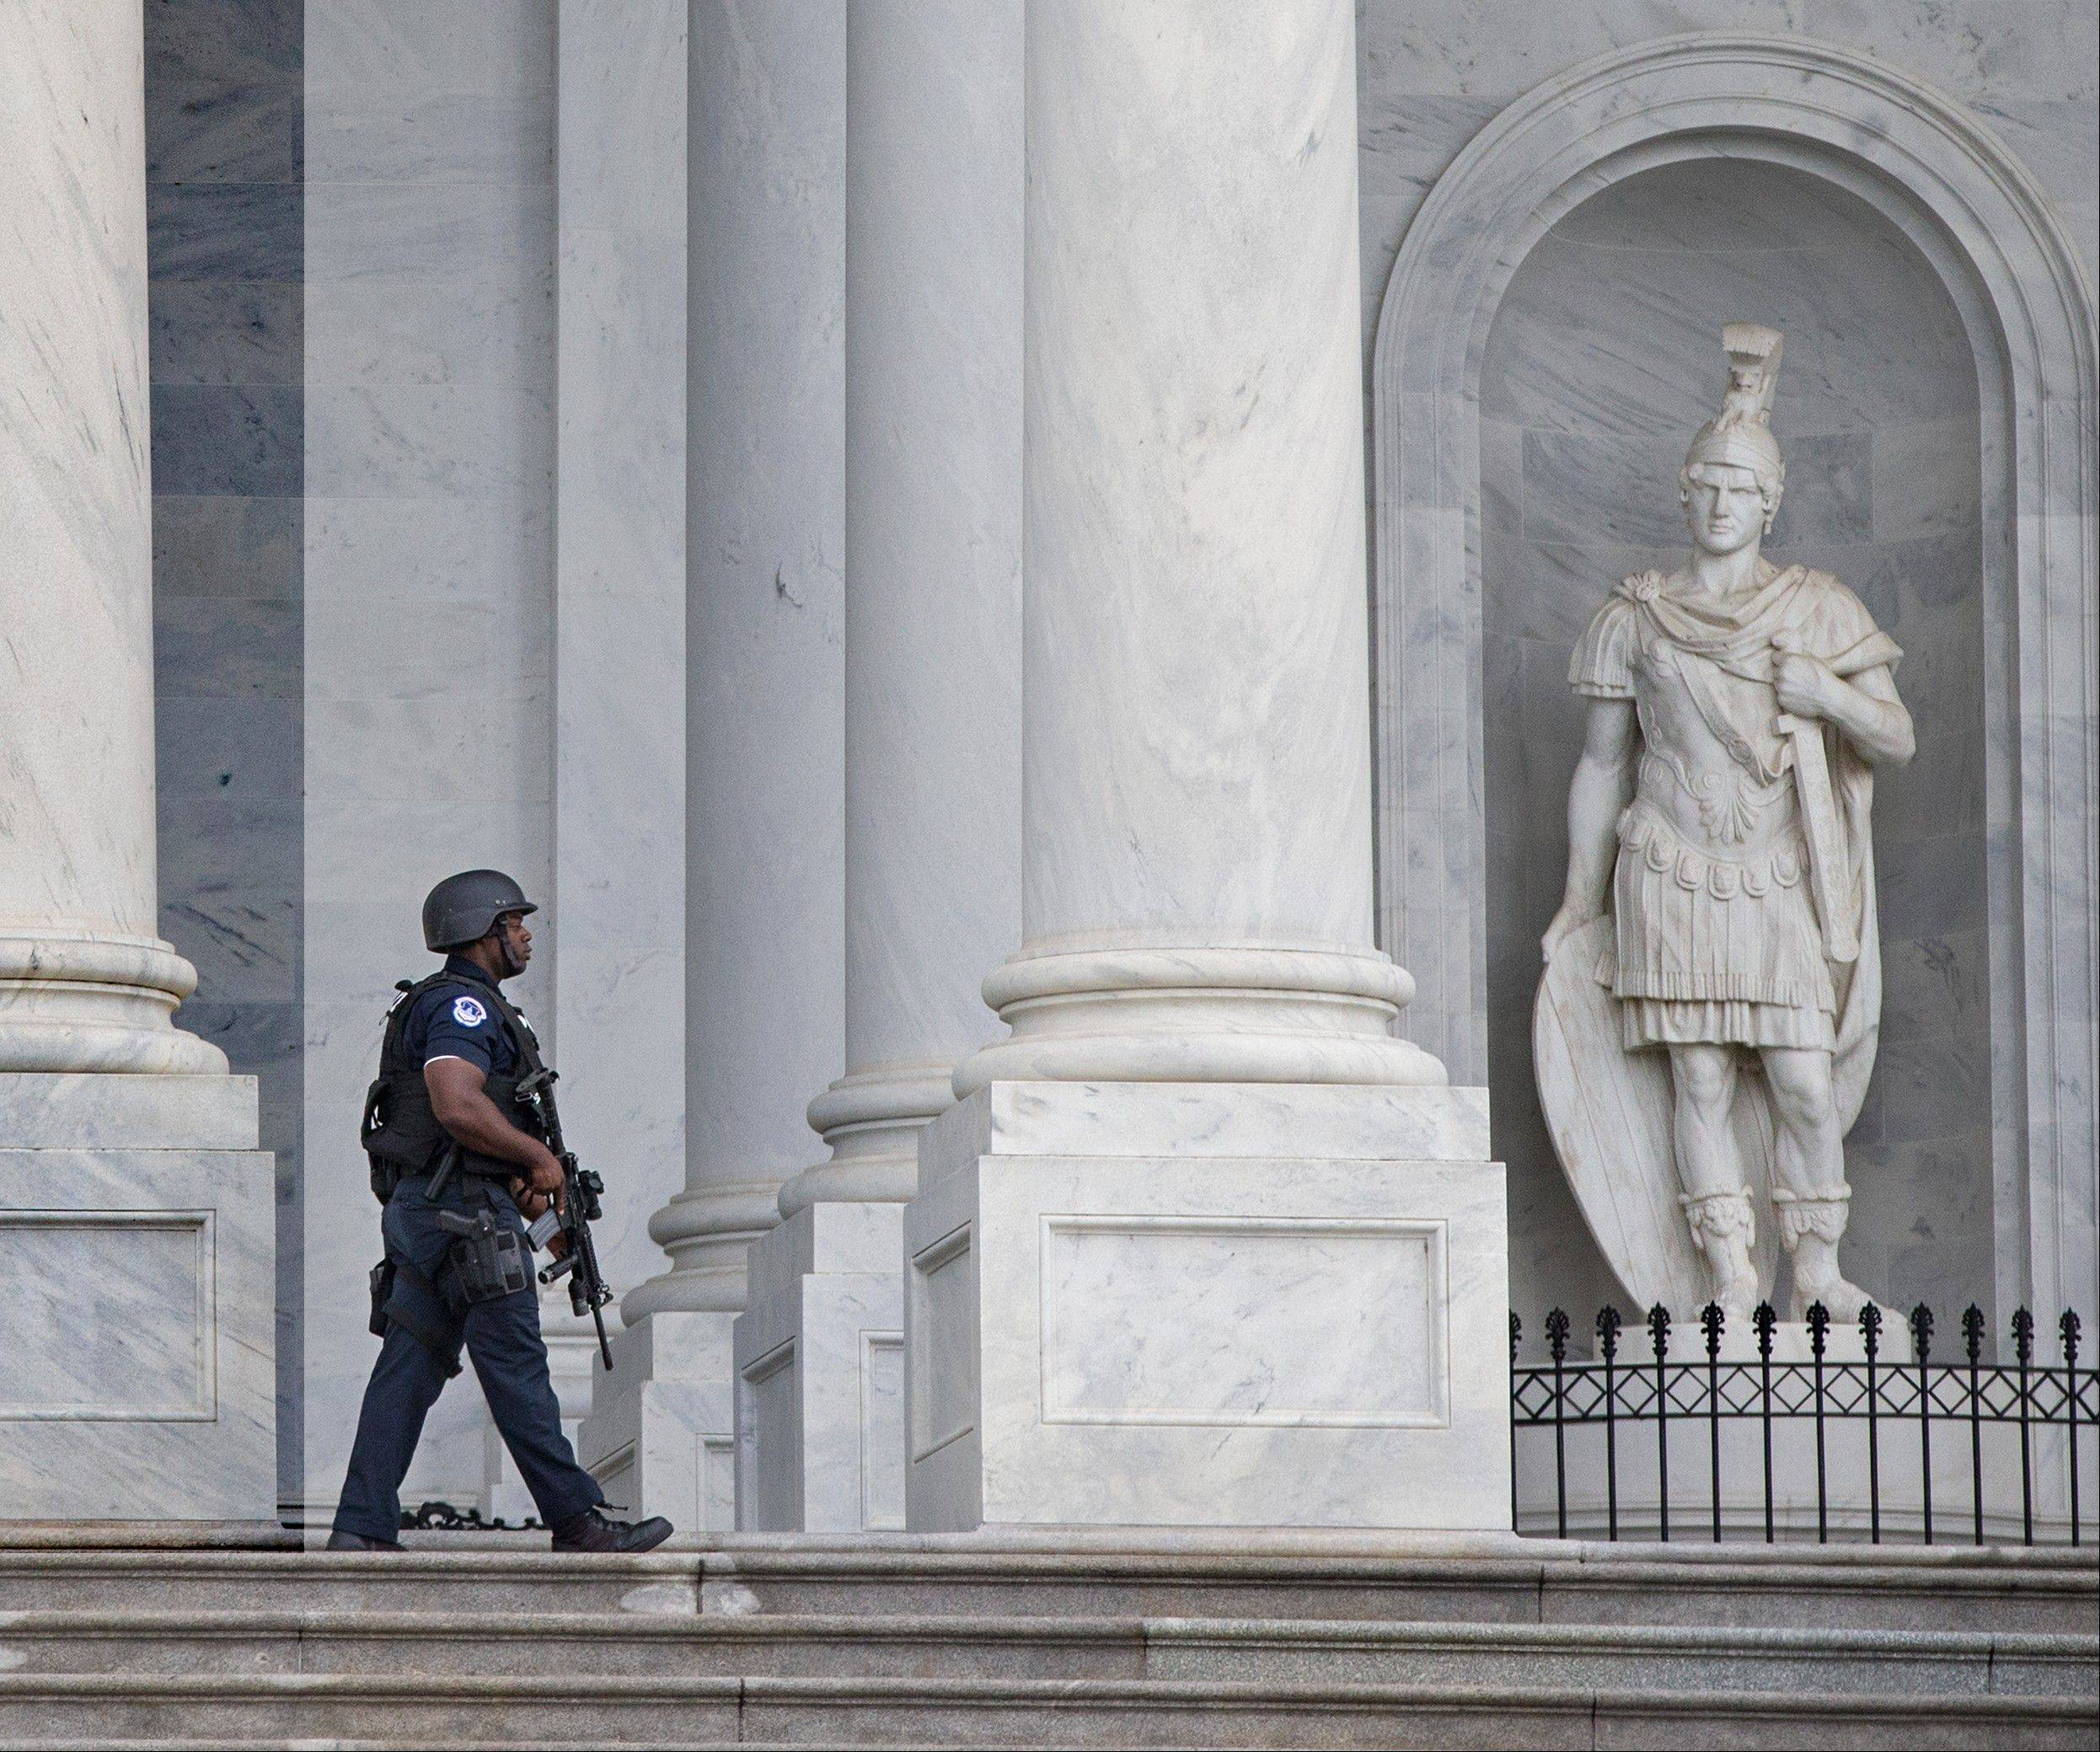 A U.S. Capitol Police officer patrols the steps at the Capitol as the investigation continues at the nearby Washington Navy Yard where at least one gunman opened fire Monday in Washington.